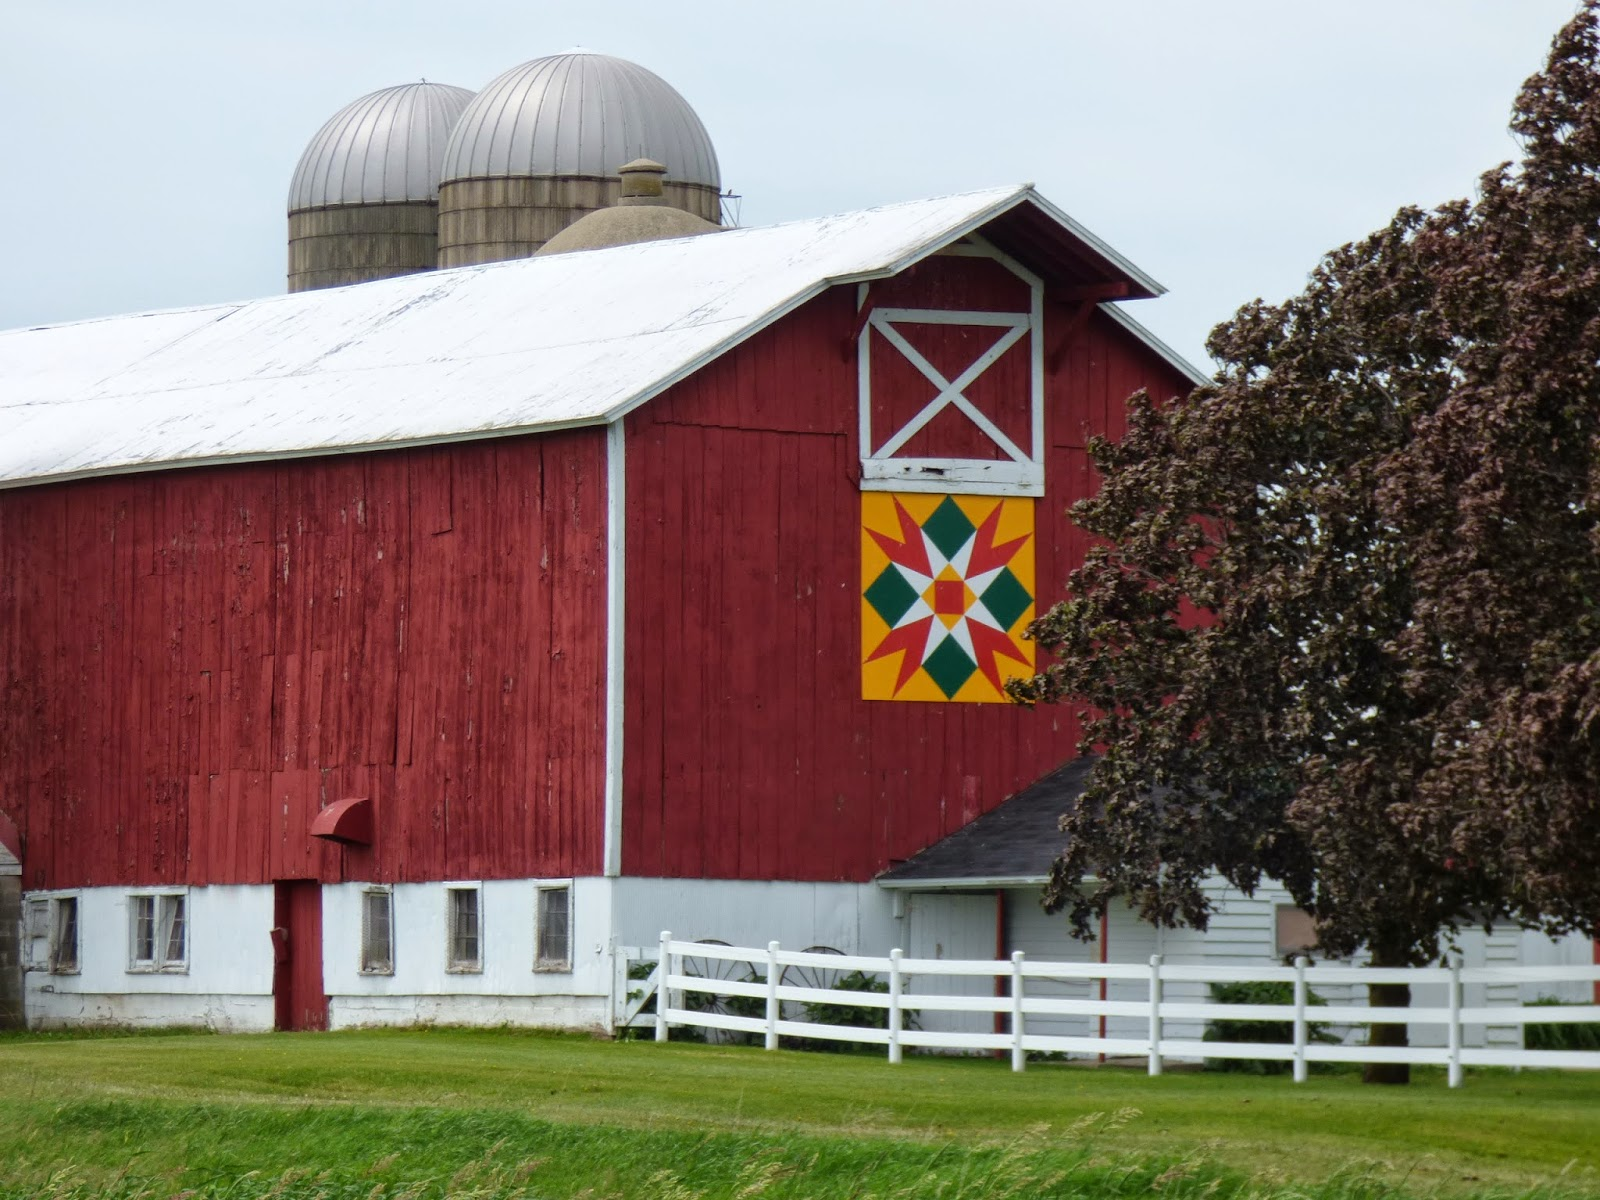 Barn Quilts: More Barn Quilts of Shawao, Wisconsin